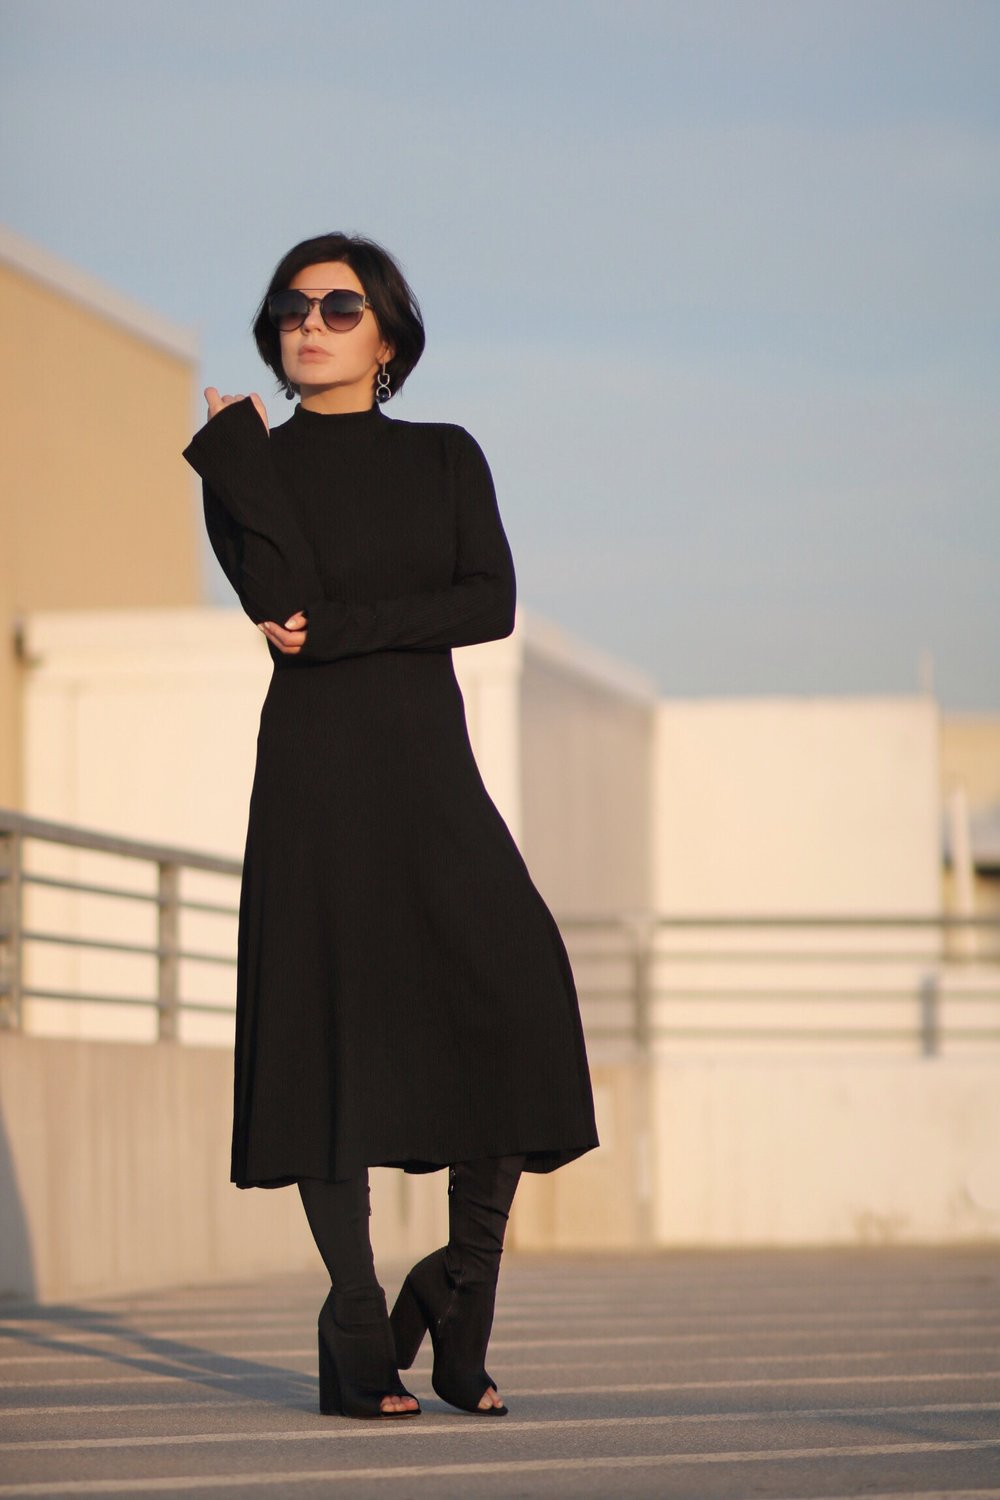 black knit dress.jpeg